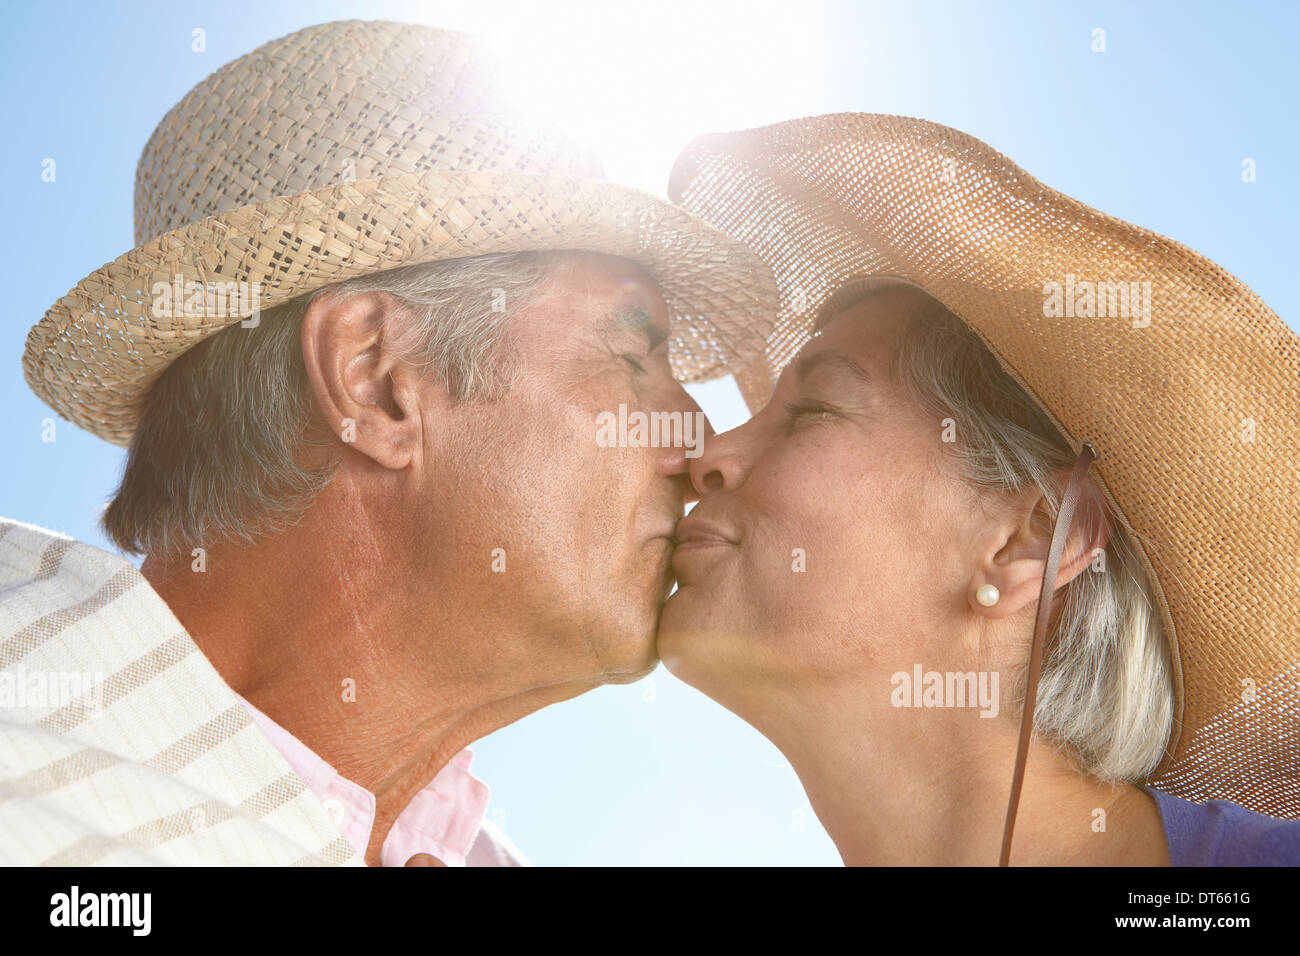 Couple wearing straw hats kissing - Stock Image